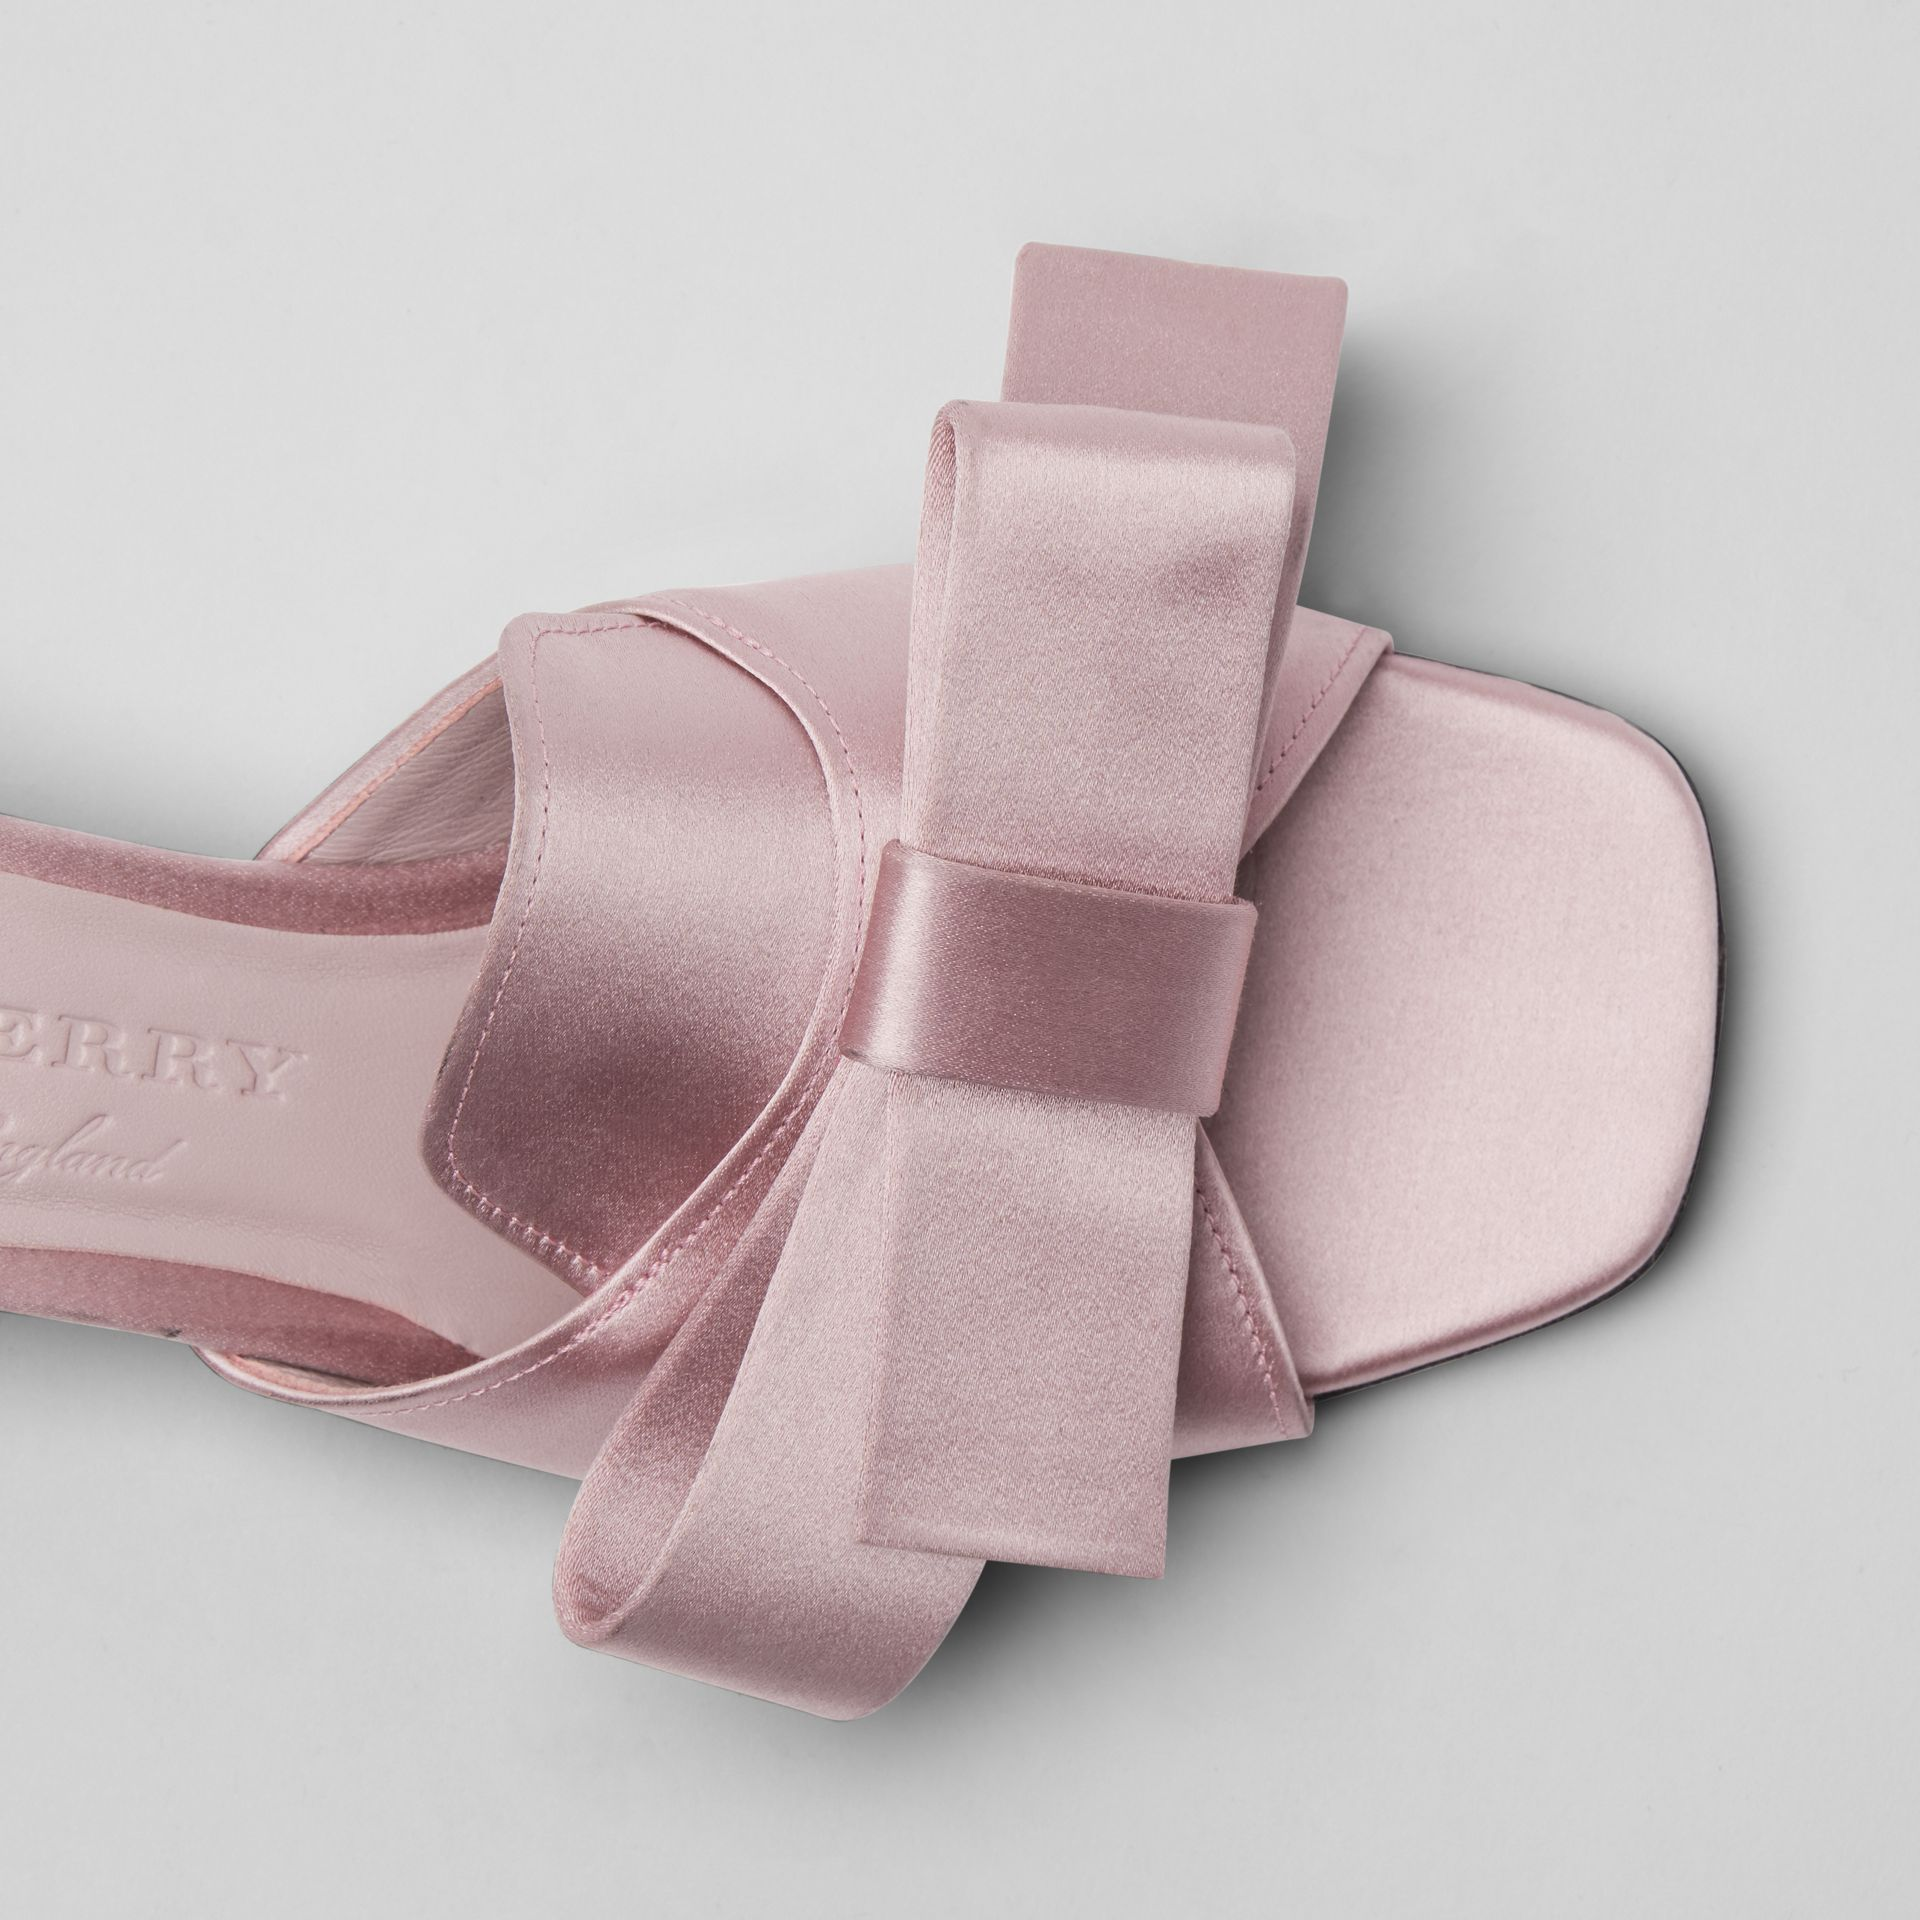 Bow Detail Satin Block-heel Mules in Light Pink Melange - Women | Burberry Australia - gallery image 1